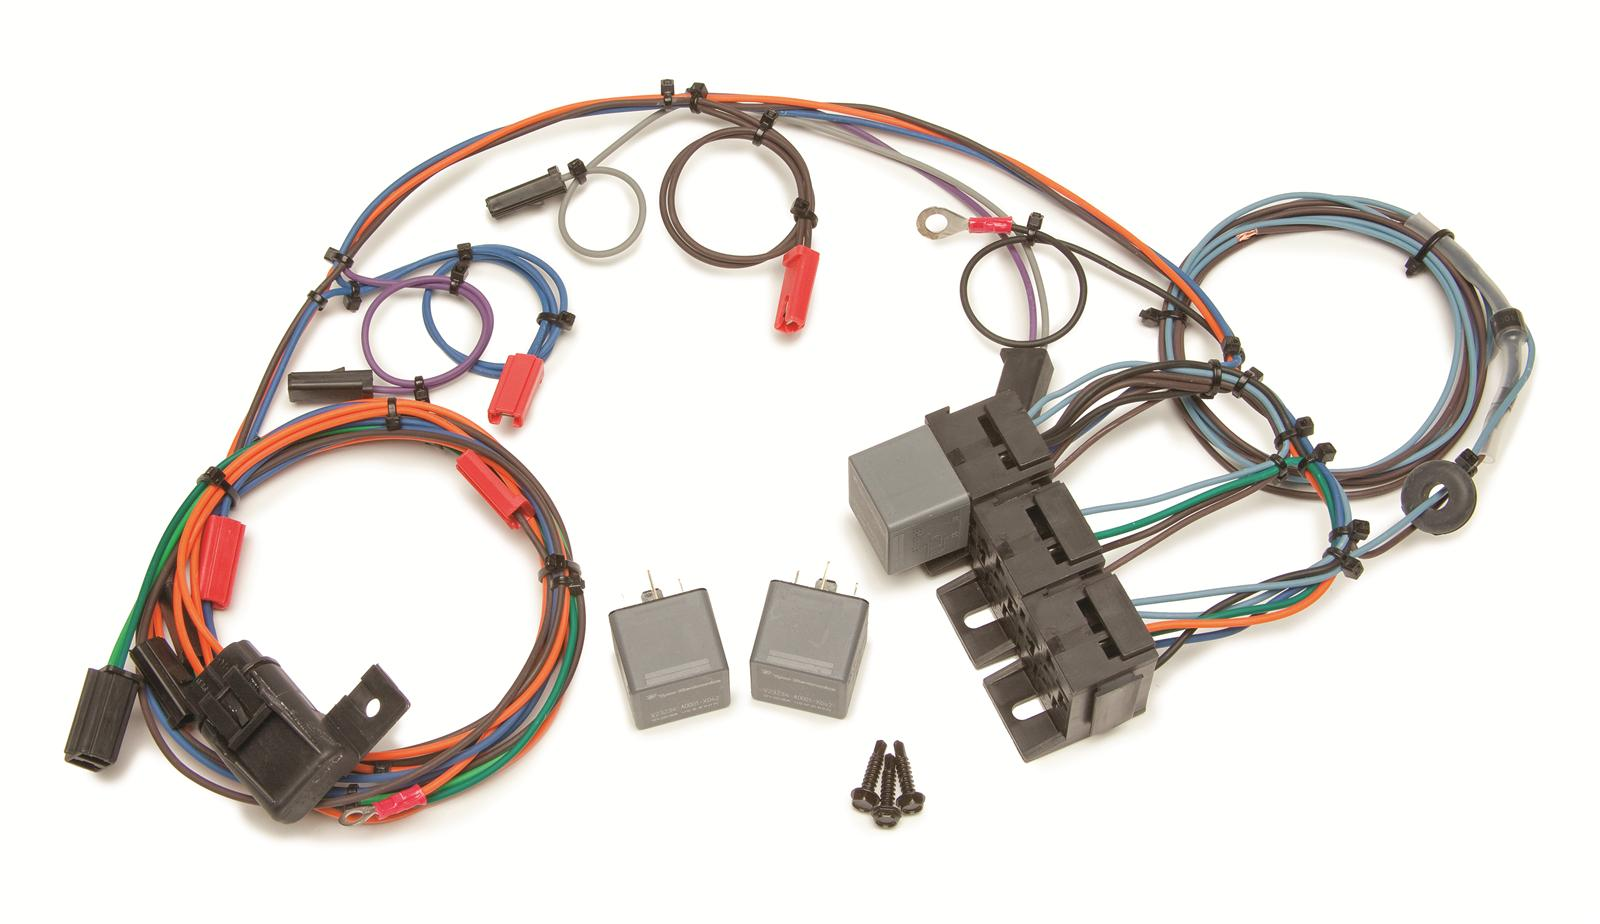 Camaro Painless Performance Headlight Door Wiring Harnesses 30818 20101 Fuse Box Free Shipping On Orders Over 99 At Summit Racing